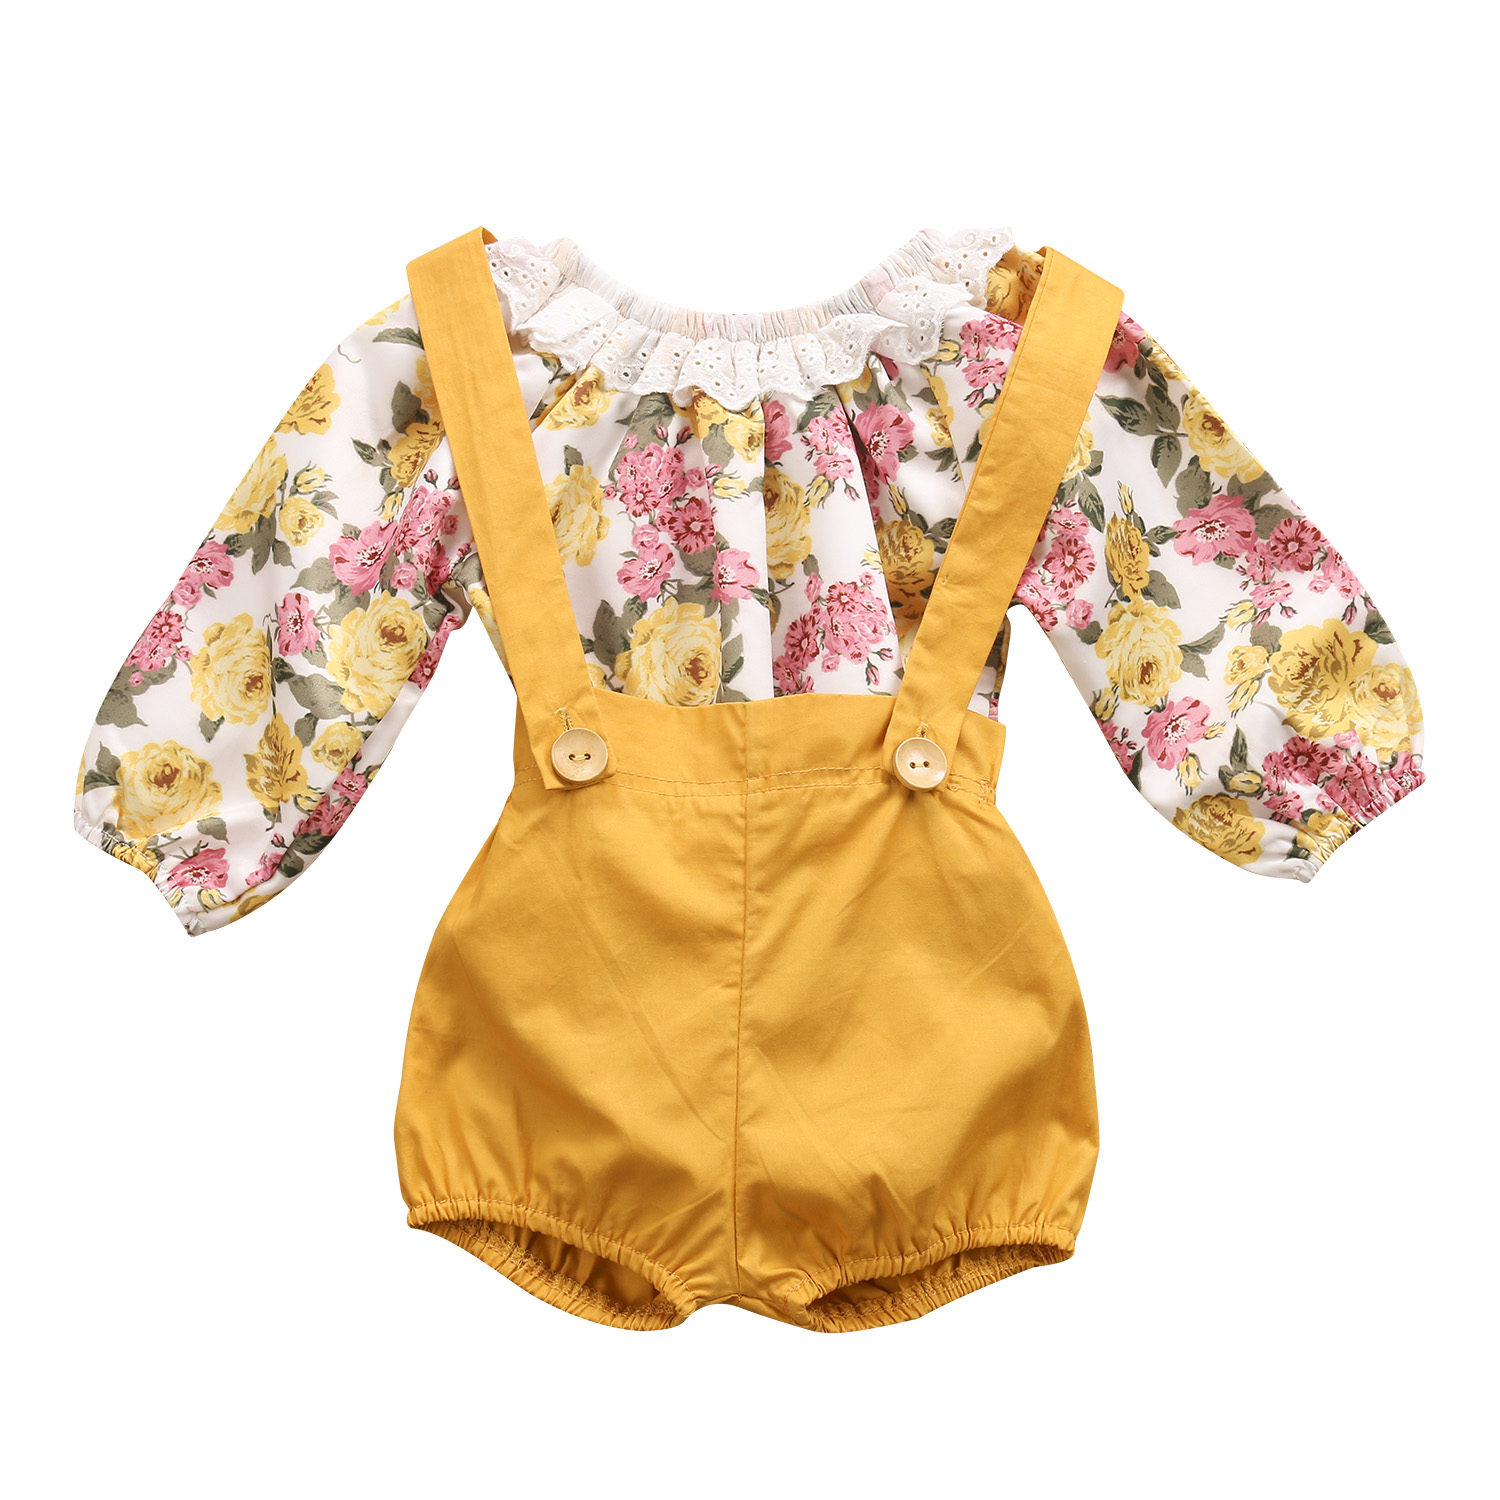 Summer Baby Girl Floral Outfits Clothes Newborn Kids Girls Princess Lace Rompers+Shorts Sunsuit Clothes Set Long Sleeve Clothing 0 24m floral baby girl clothes set 2017 summer sleeveless ruffles crop tops baby bloomers shorts 2pcs outfits children sunsuit